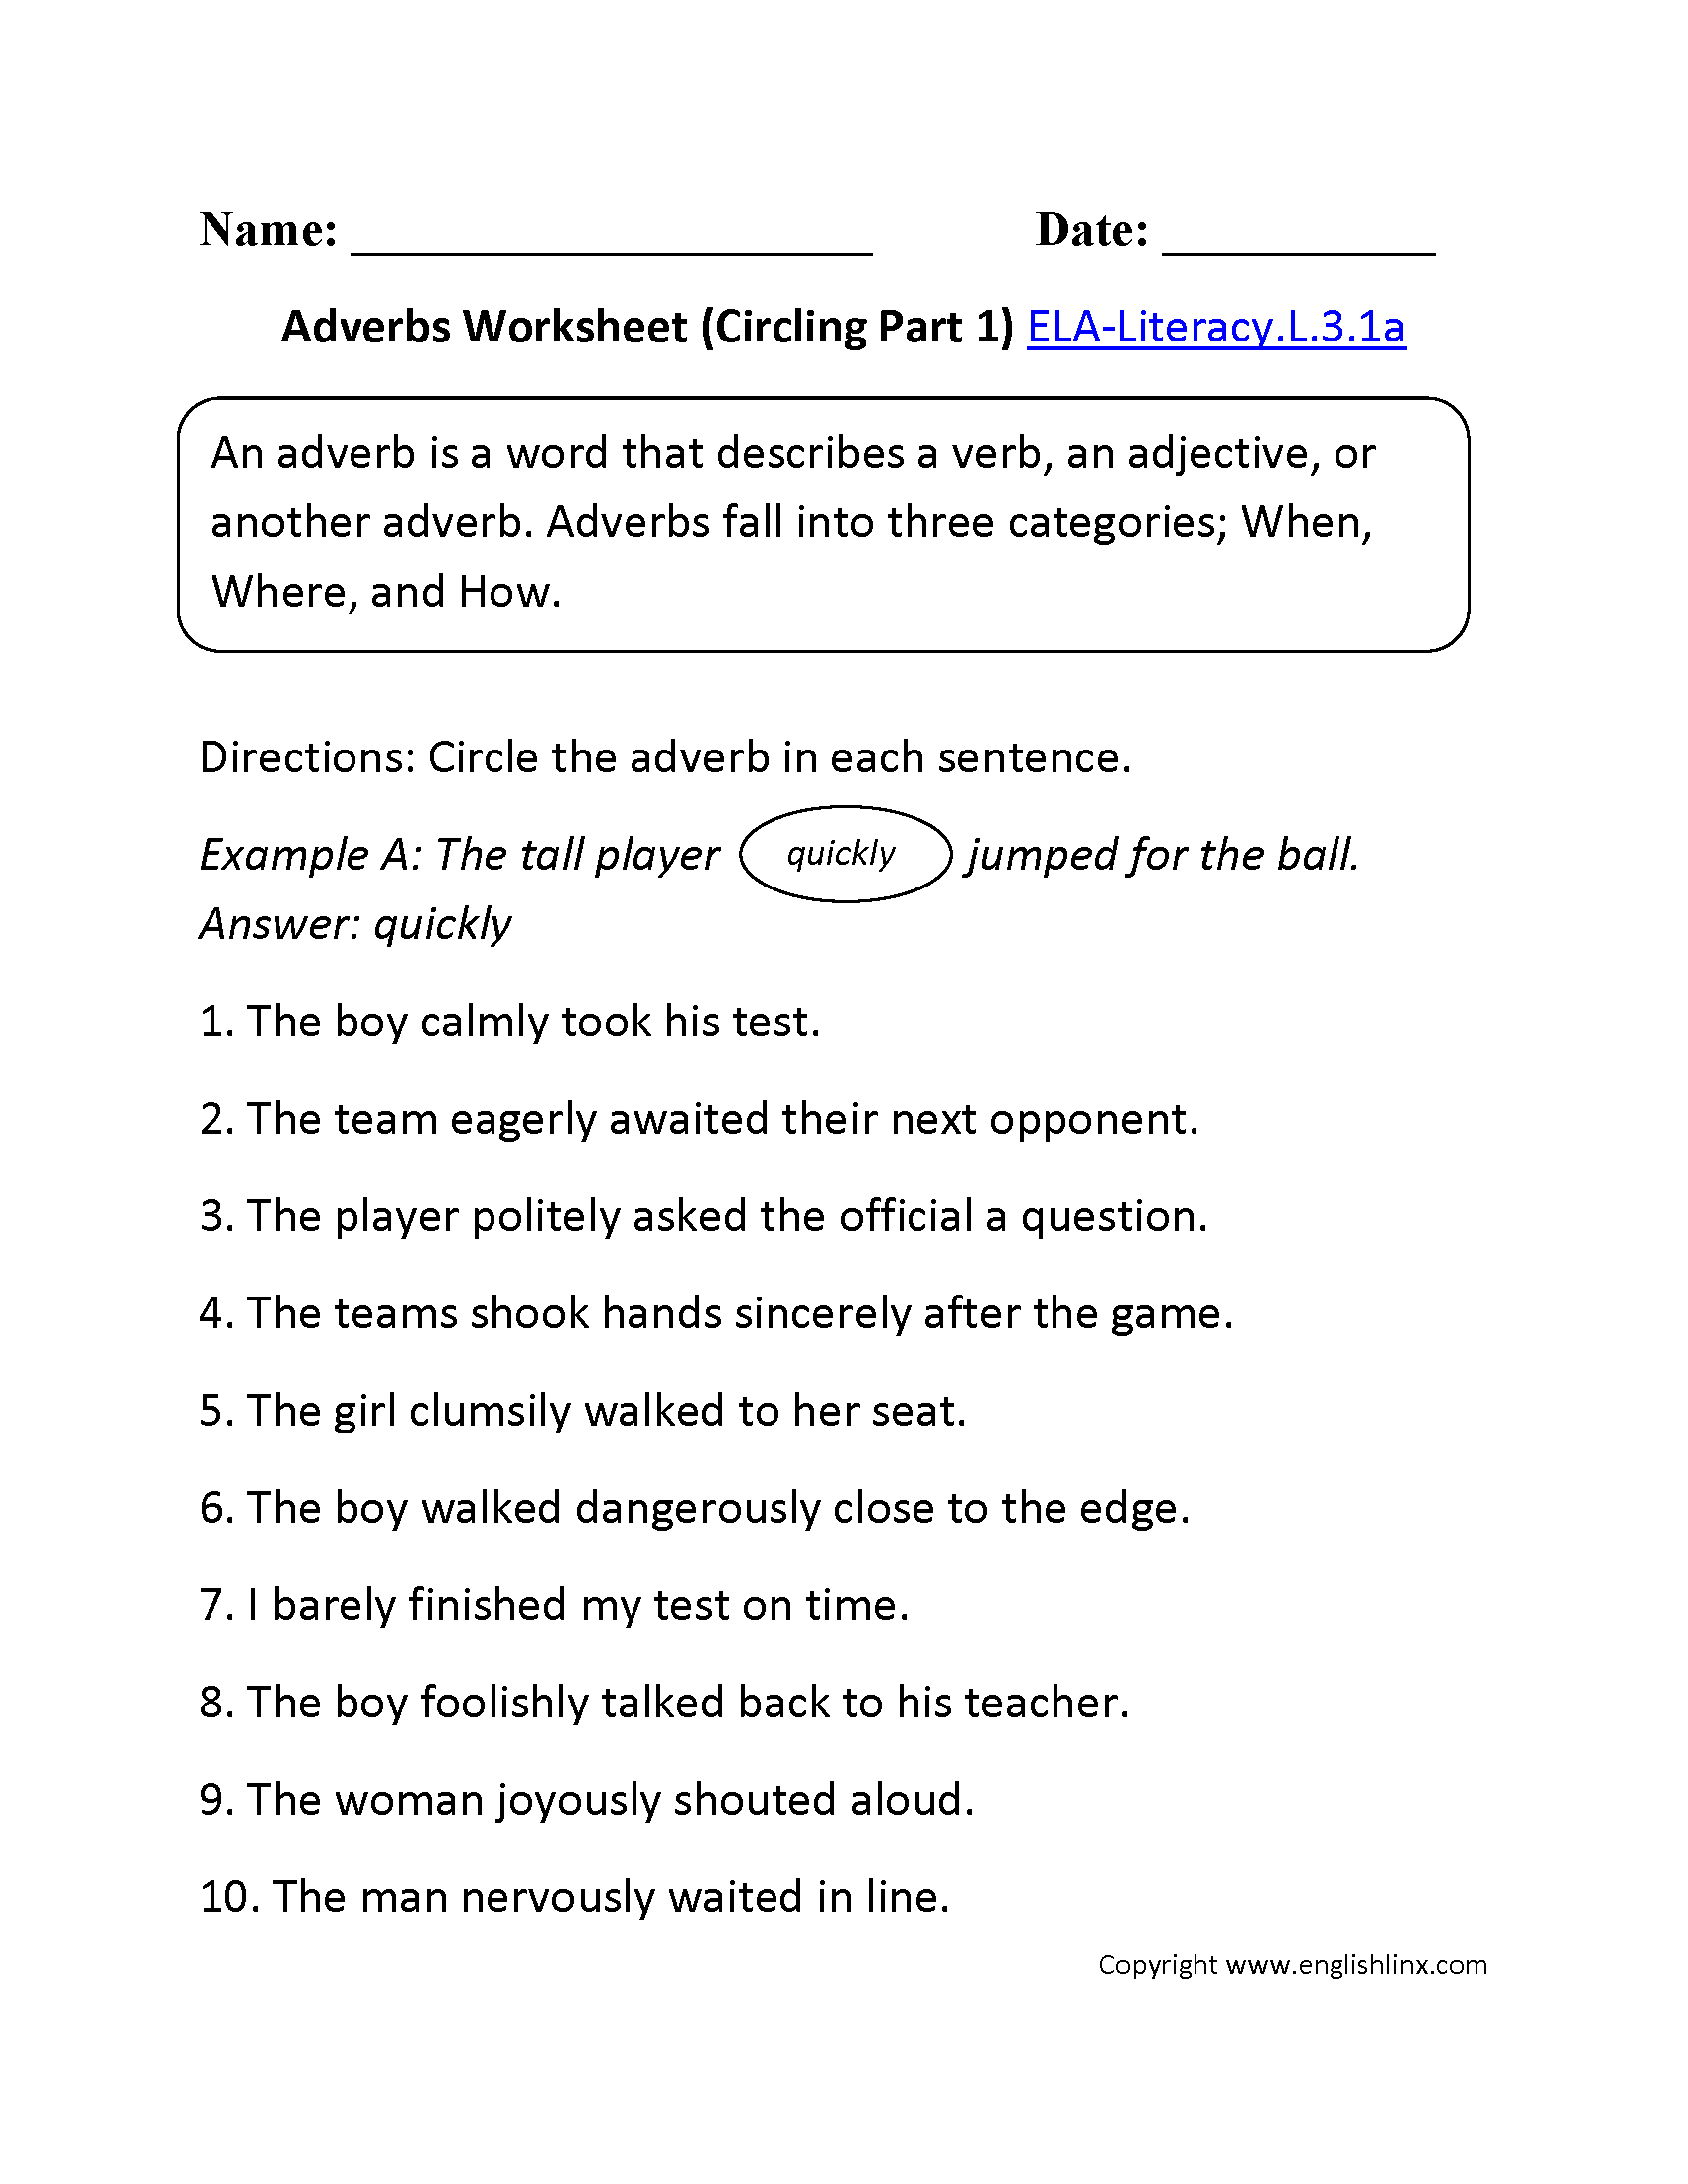 Worksheets 7th Grade Grammar Worksheets adverbs worksheet 1 ela literacy l 3 1a language english worksheets that are aligned to the grade common core standards for language